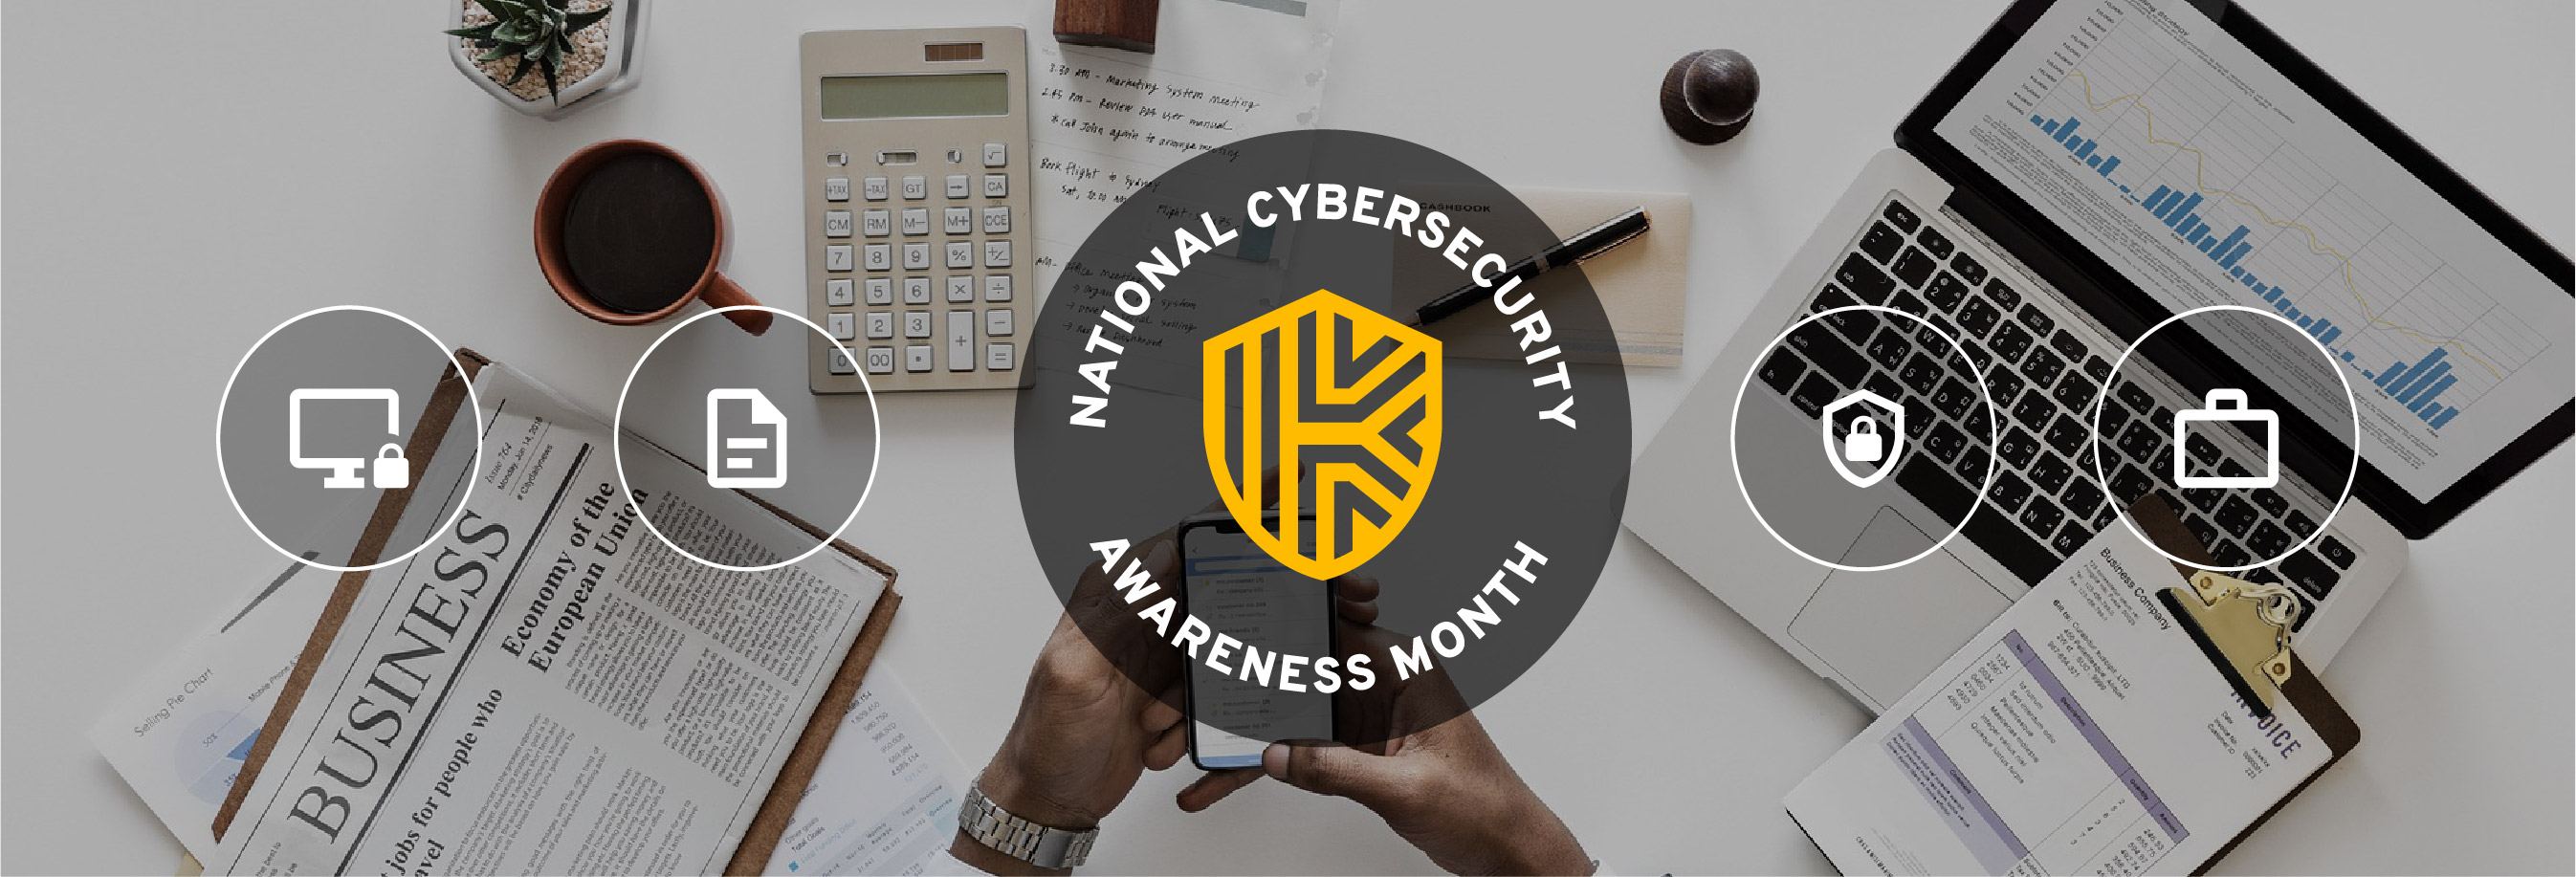 Welcome to National Cybersecurity Awareness Month 2019